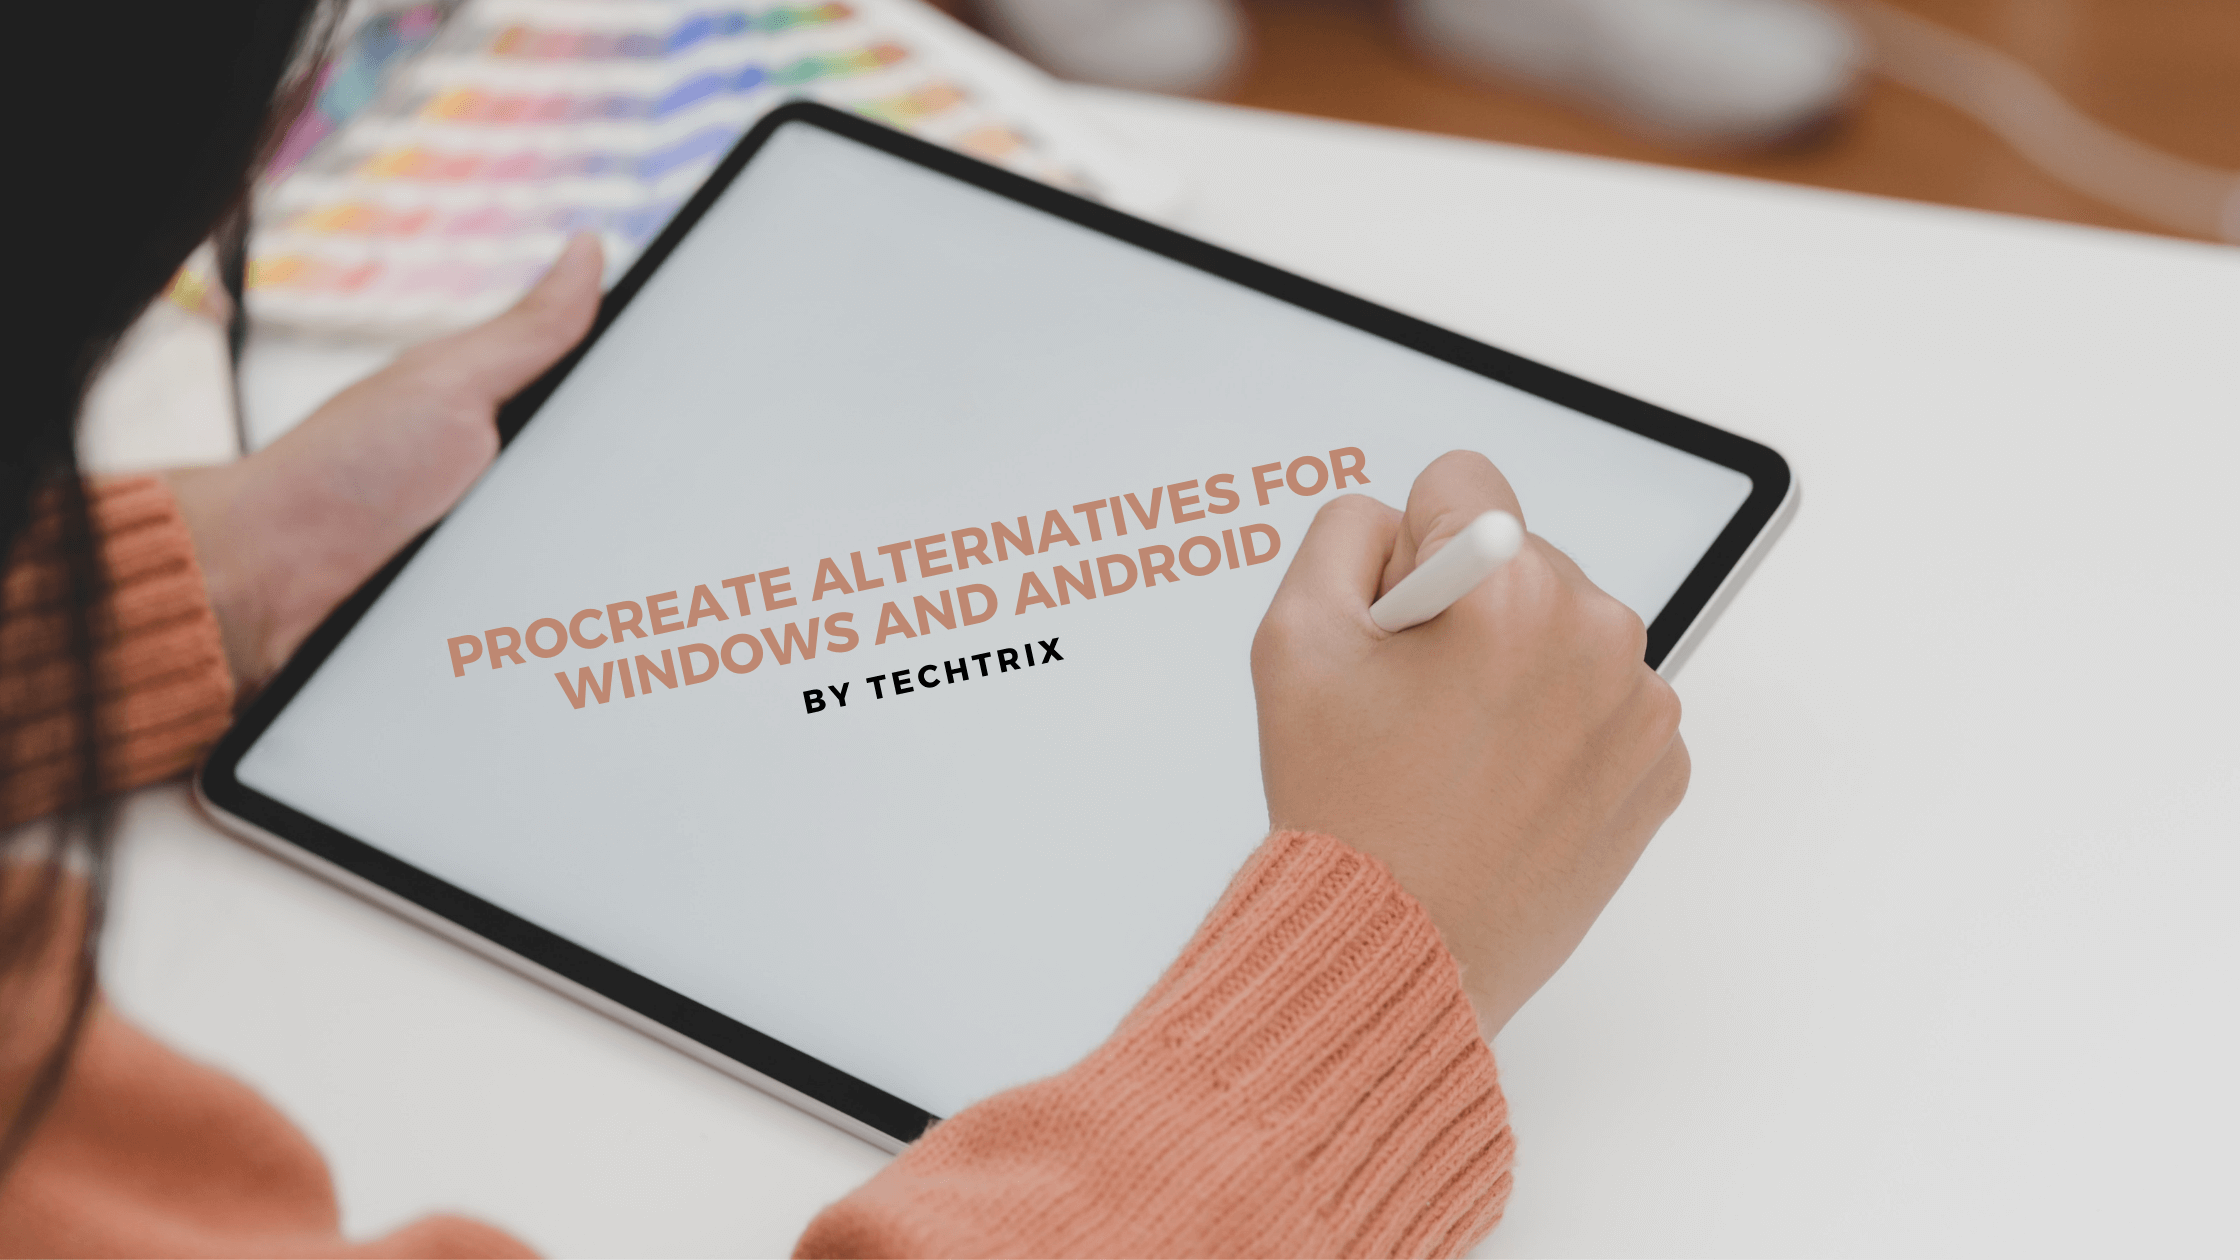 Procreate Alternatives For Windows